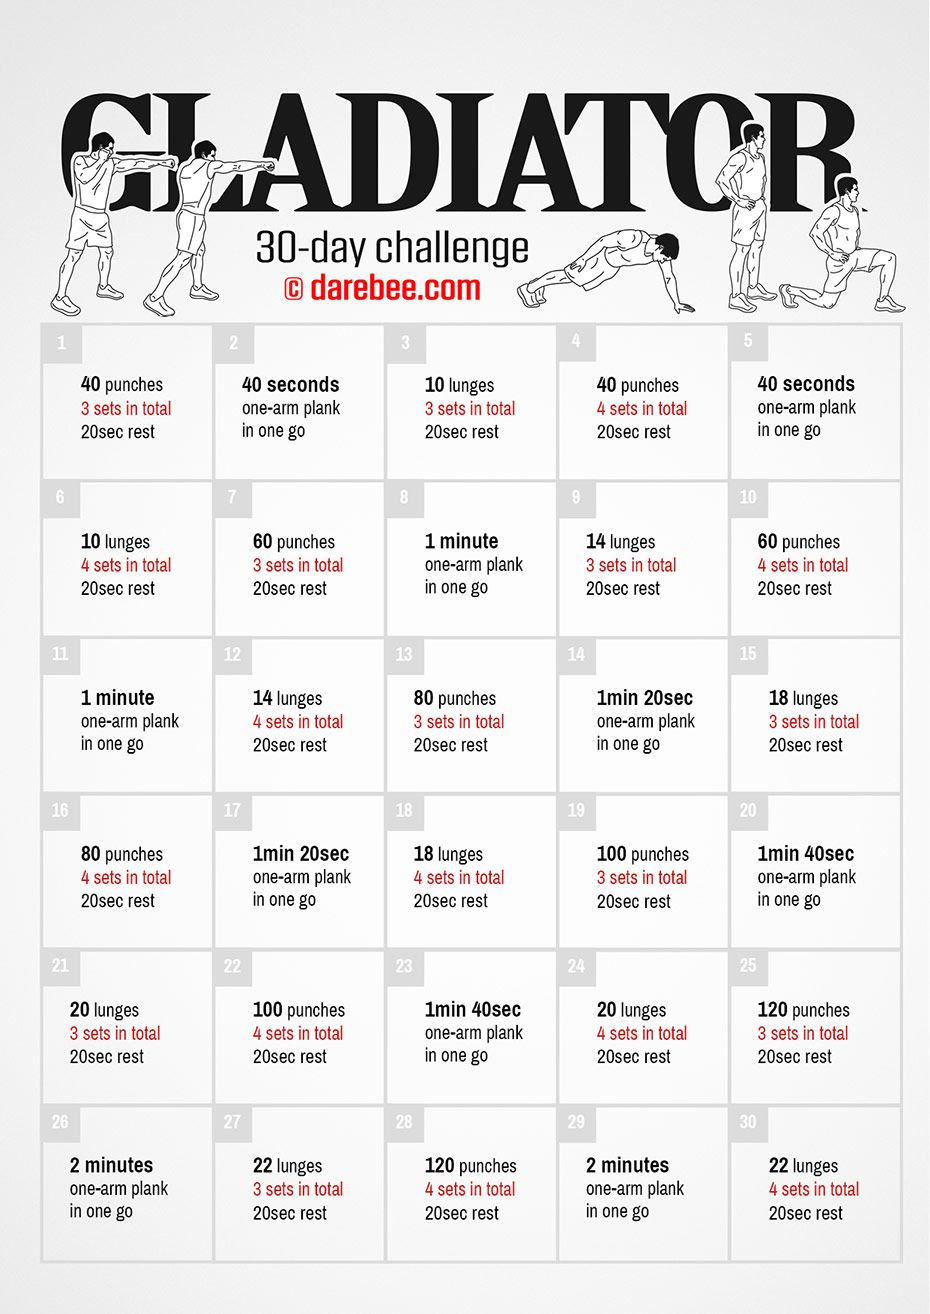 30-day fitness challenge by darebee | neilarey/darebee | workout